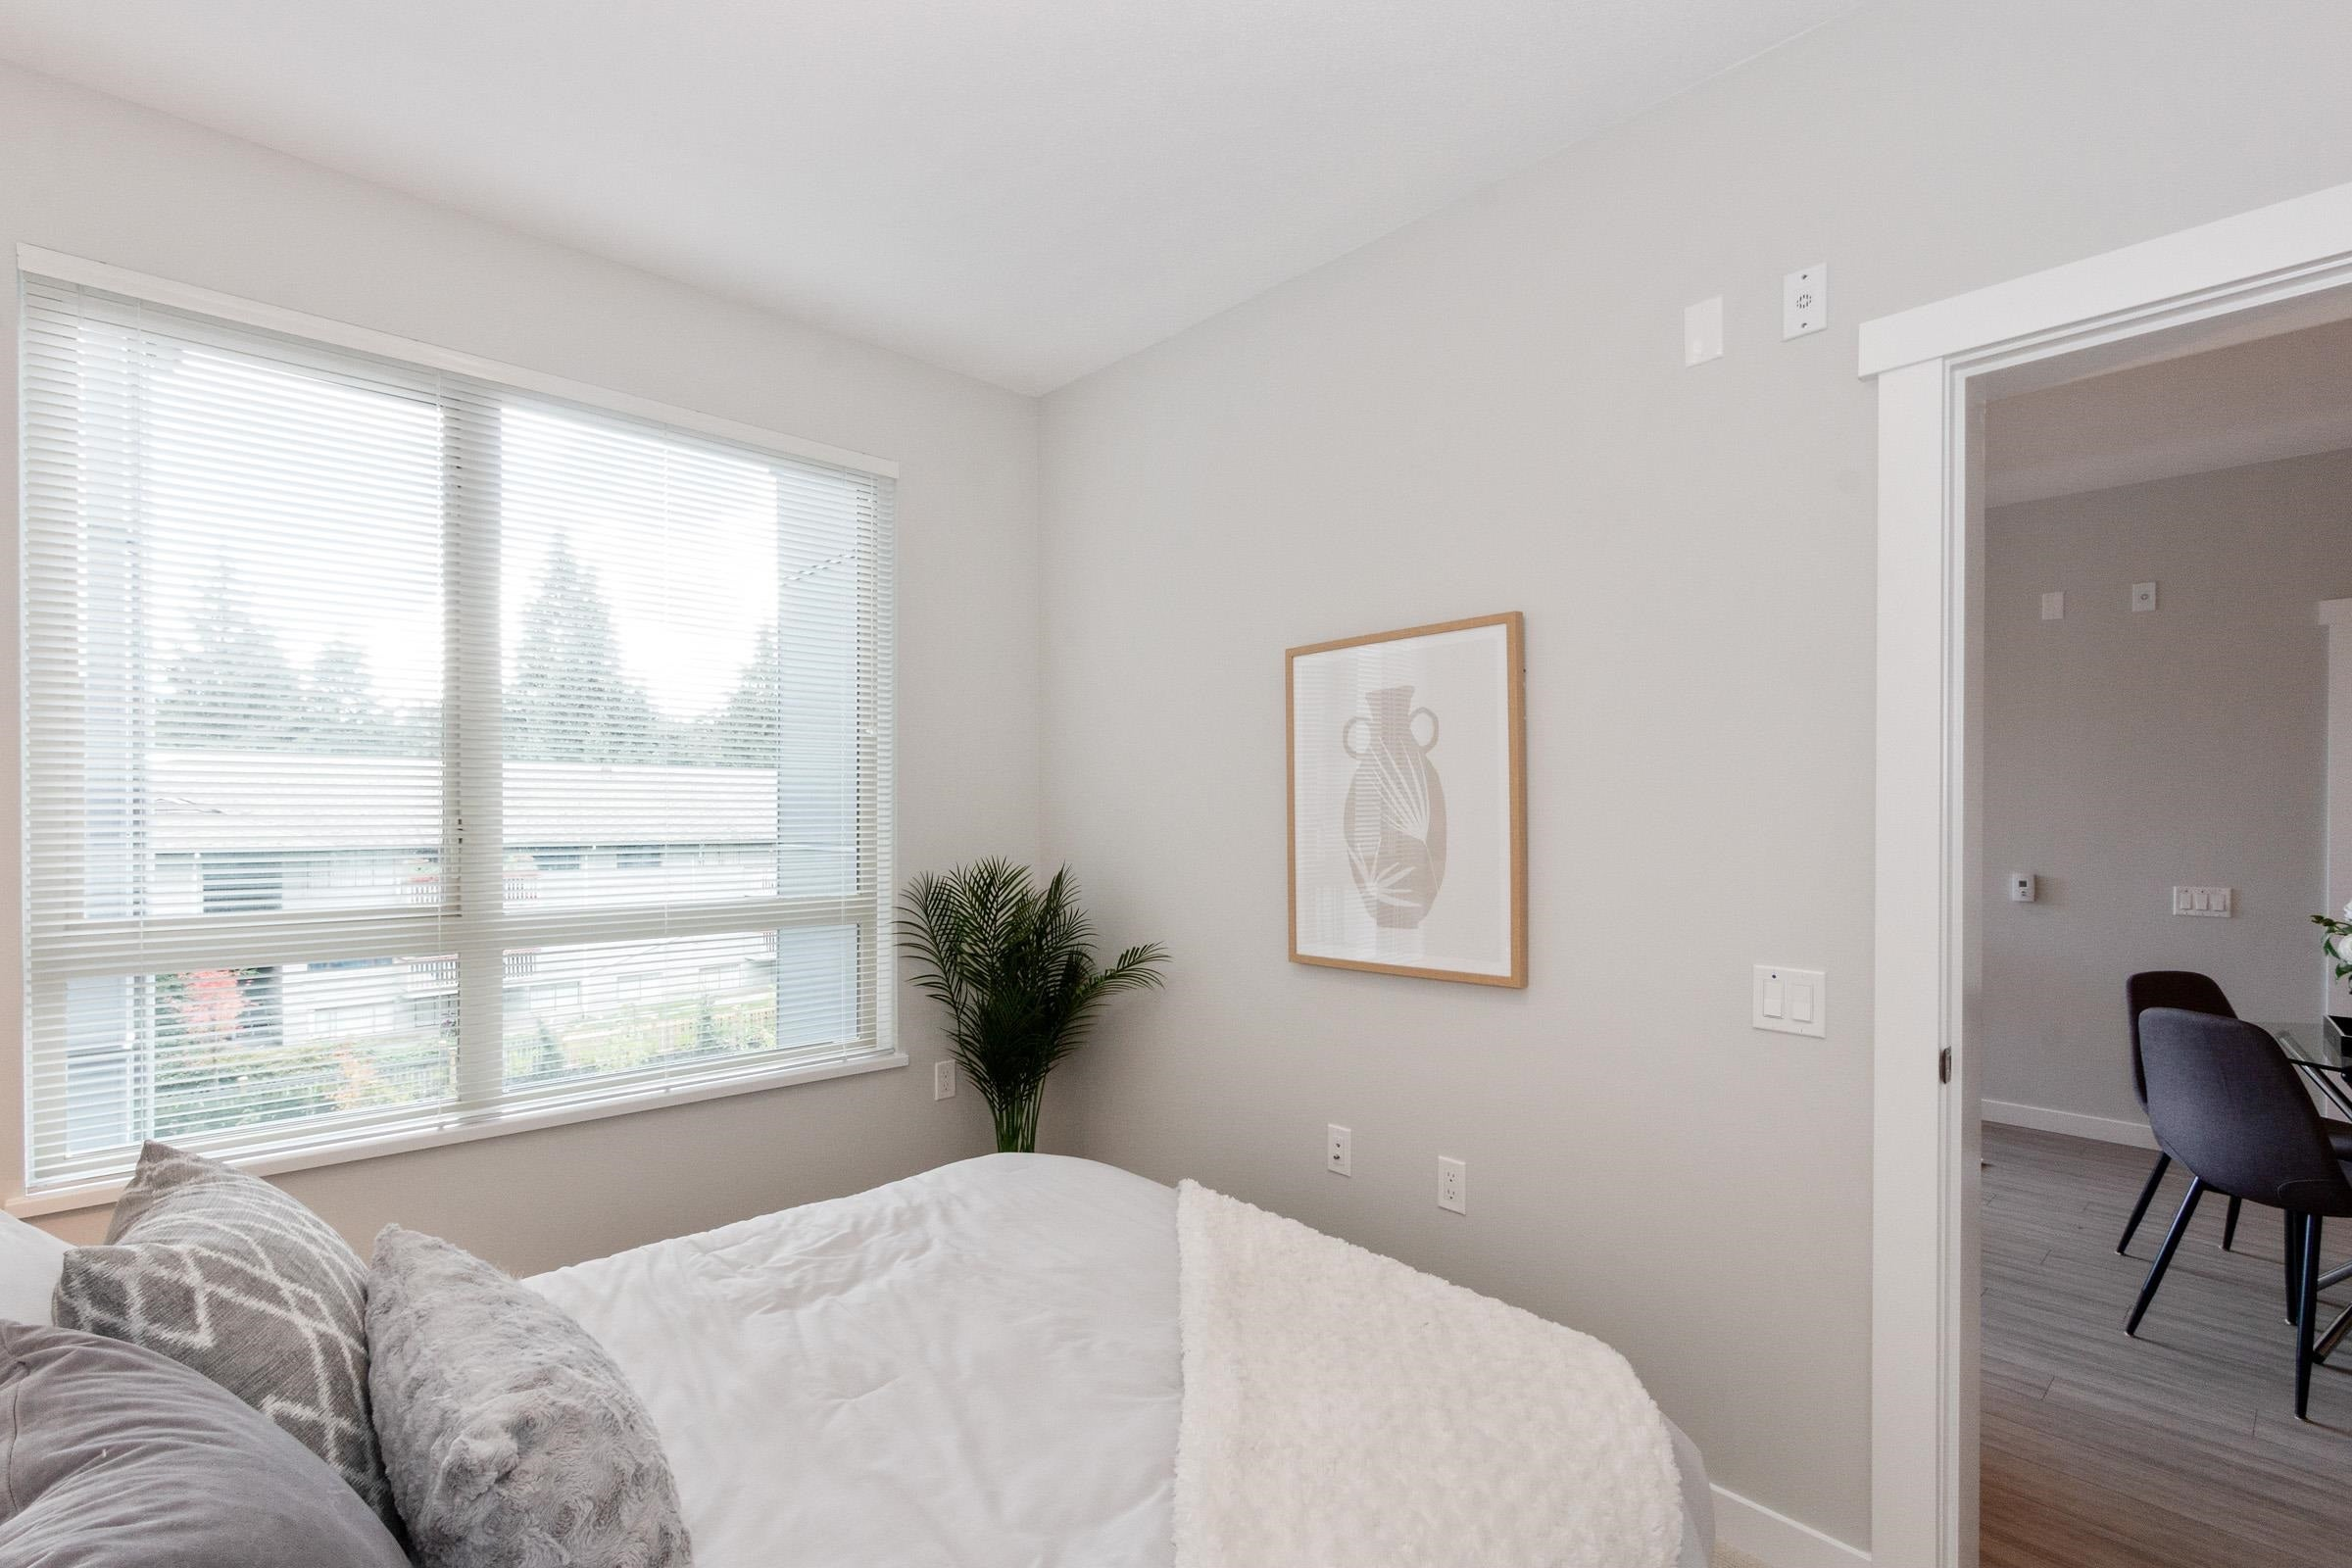 316 2651 LIBRARY LANE - Lynn Valley Apartment/Condo for sale, 2 Bedrooms (R2622878) - #16